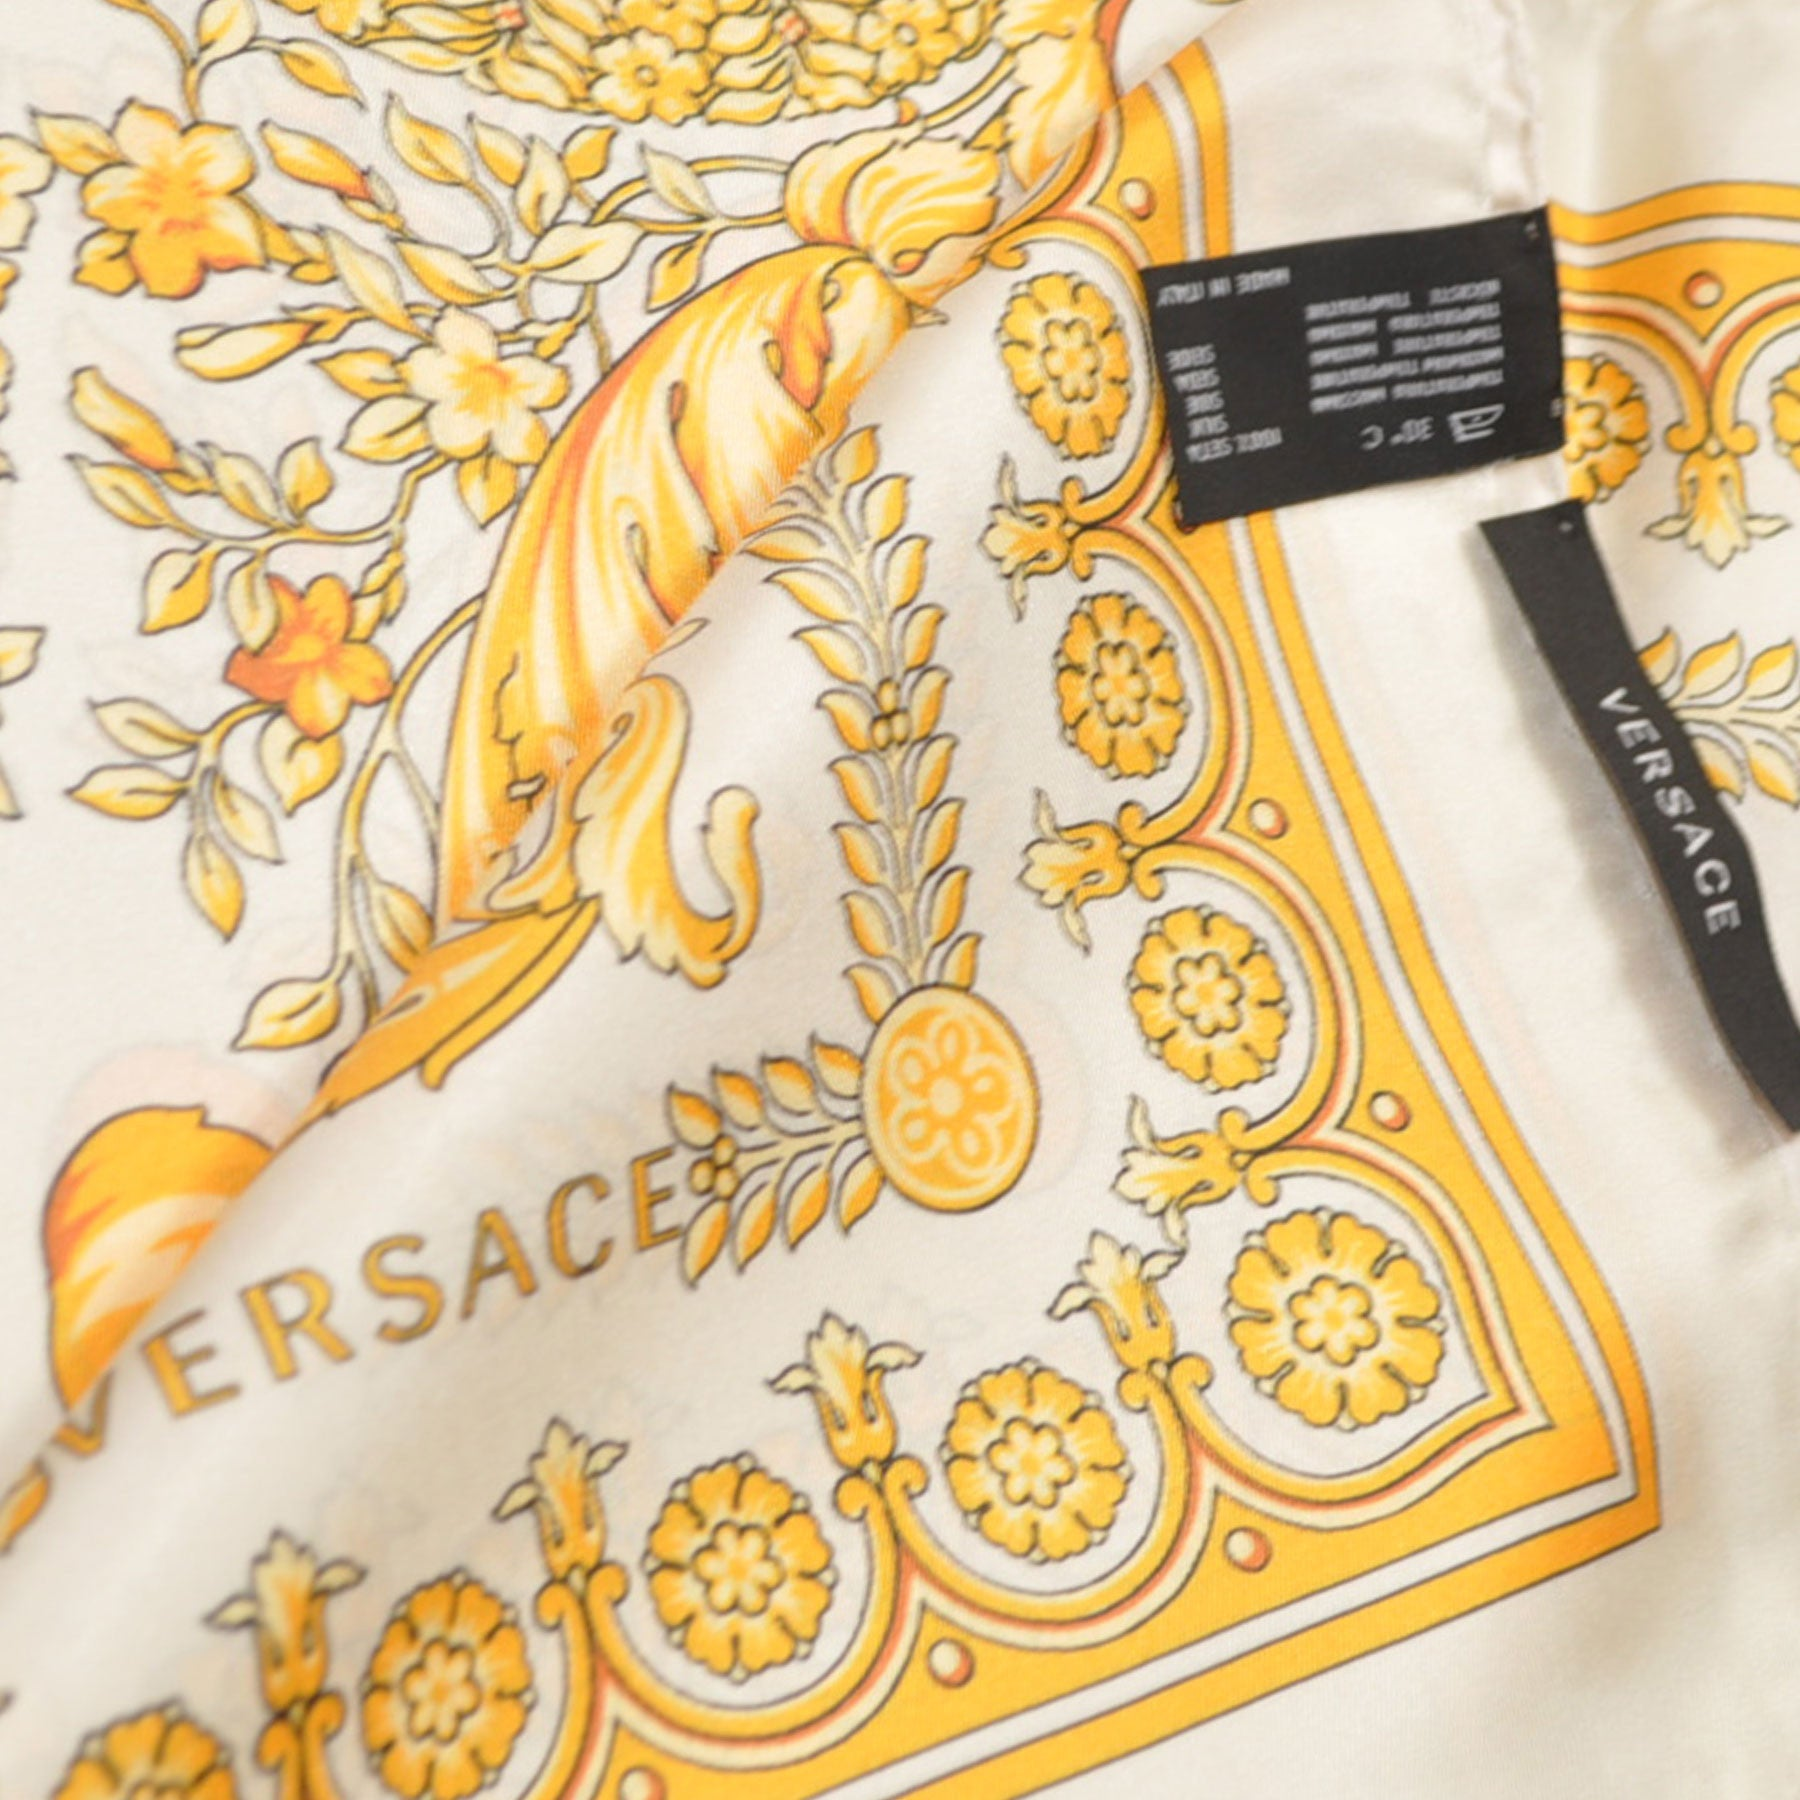 Versace Scarf White Gold Baroque Twill Silk Square Scarf